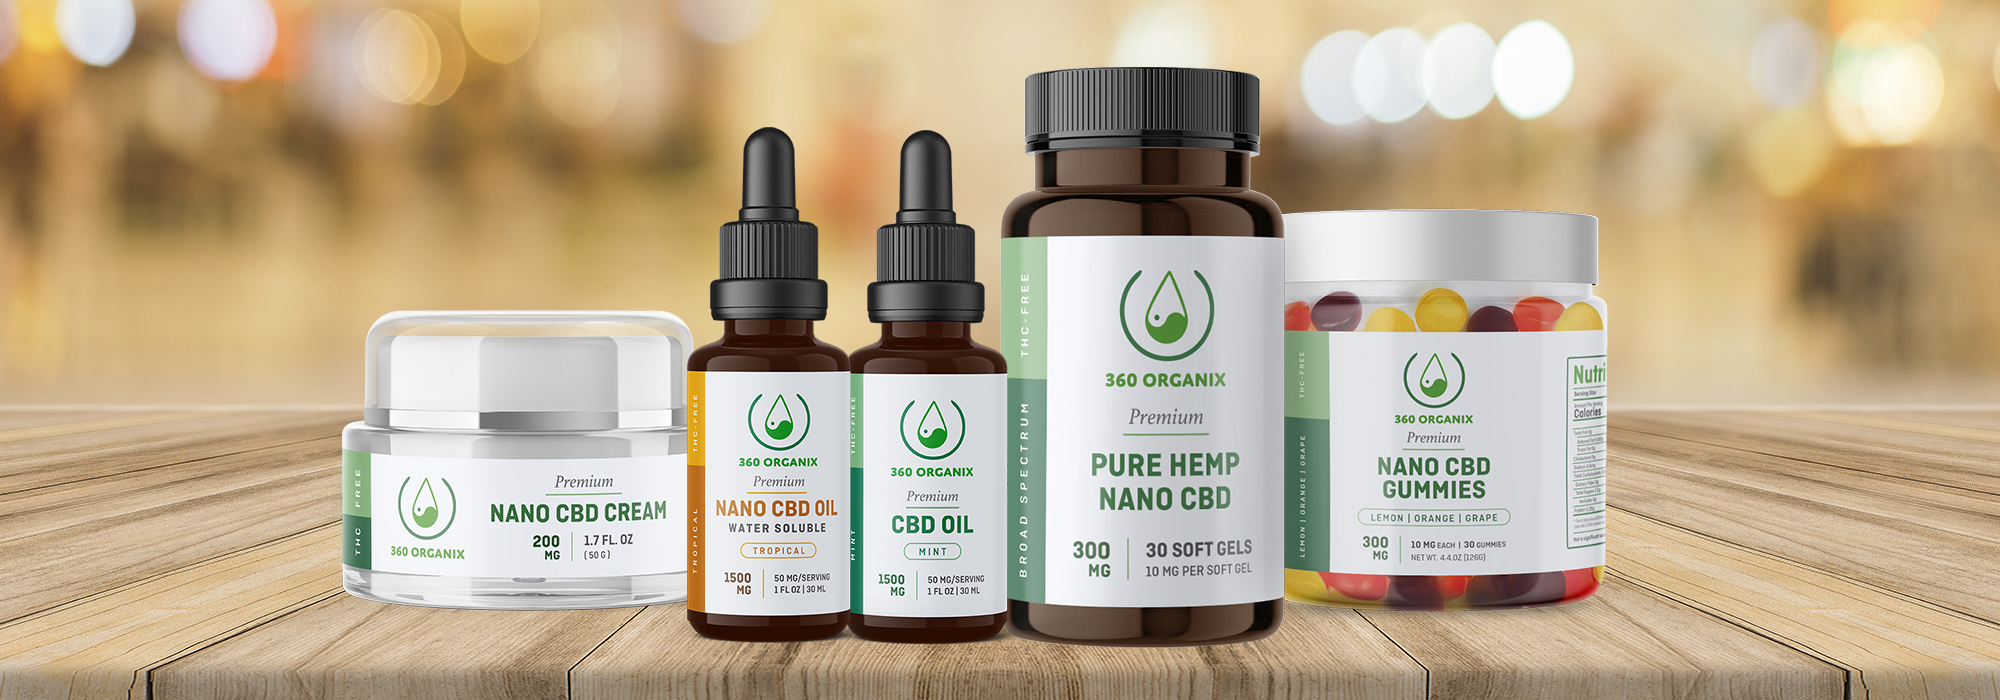 360 Organix CBD Products